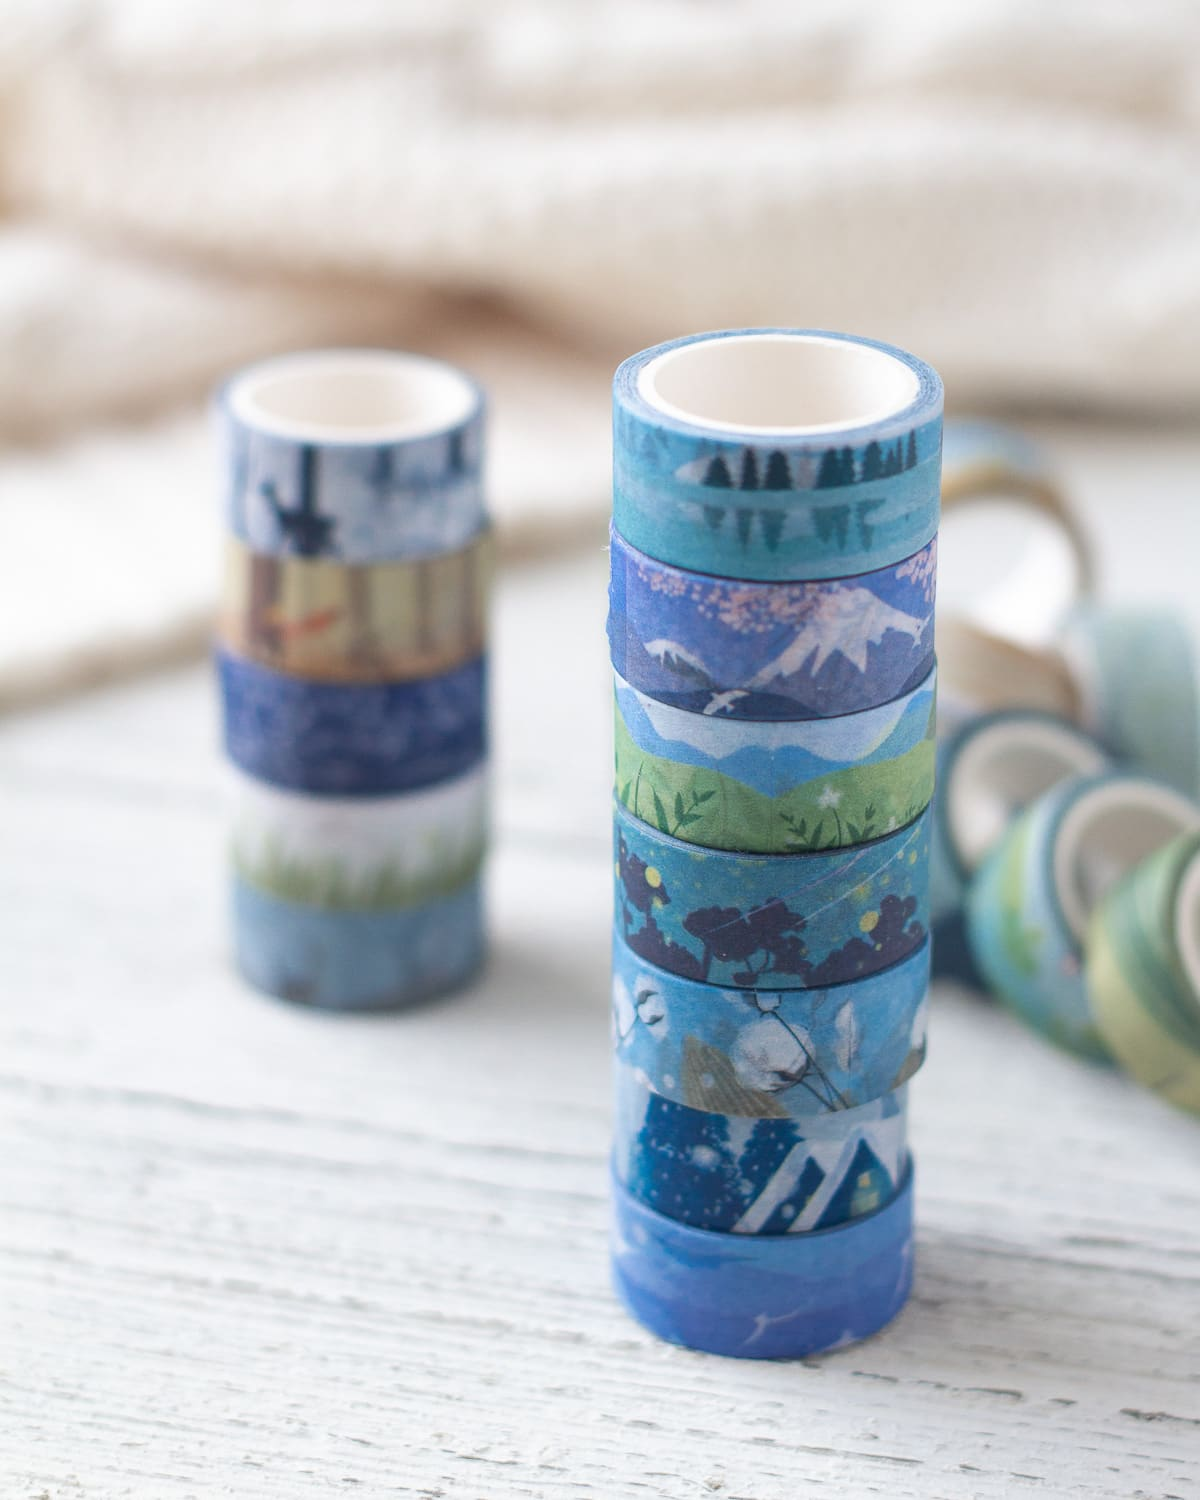 Washi tape with landscape designs stacked on a wooden surface.